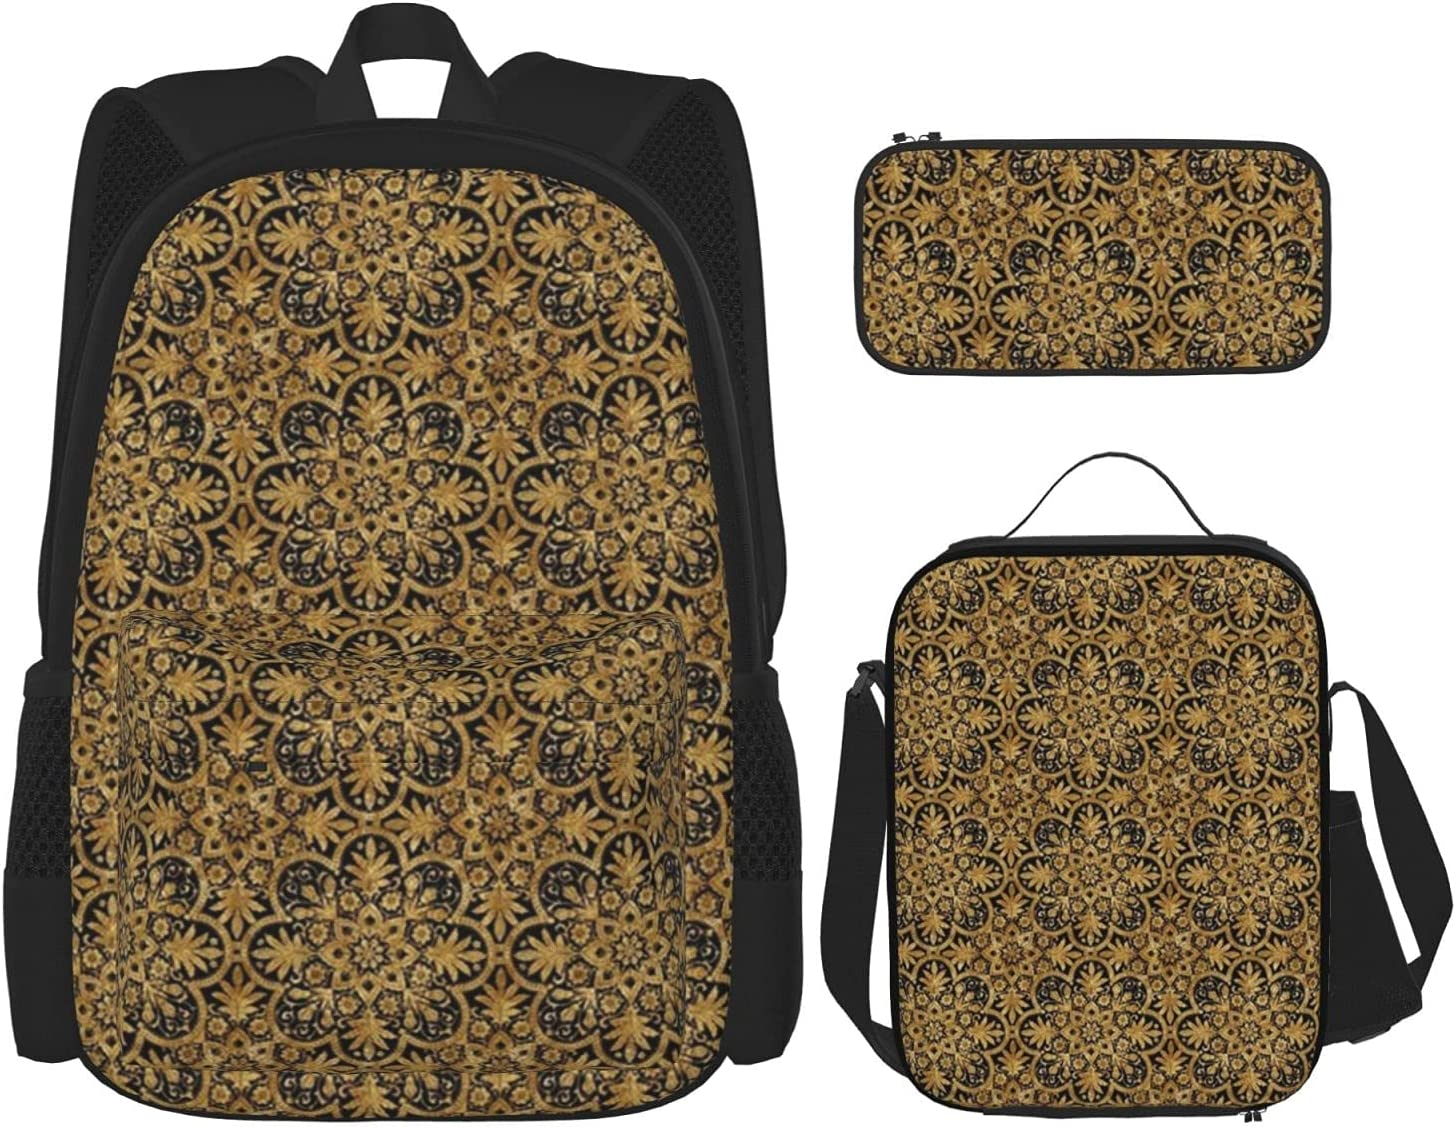 Backpack Bags Bourgogne Manufacturer 4 years warranty regenerated product Tile Gilt Lunch with Bag Black Gold